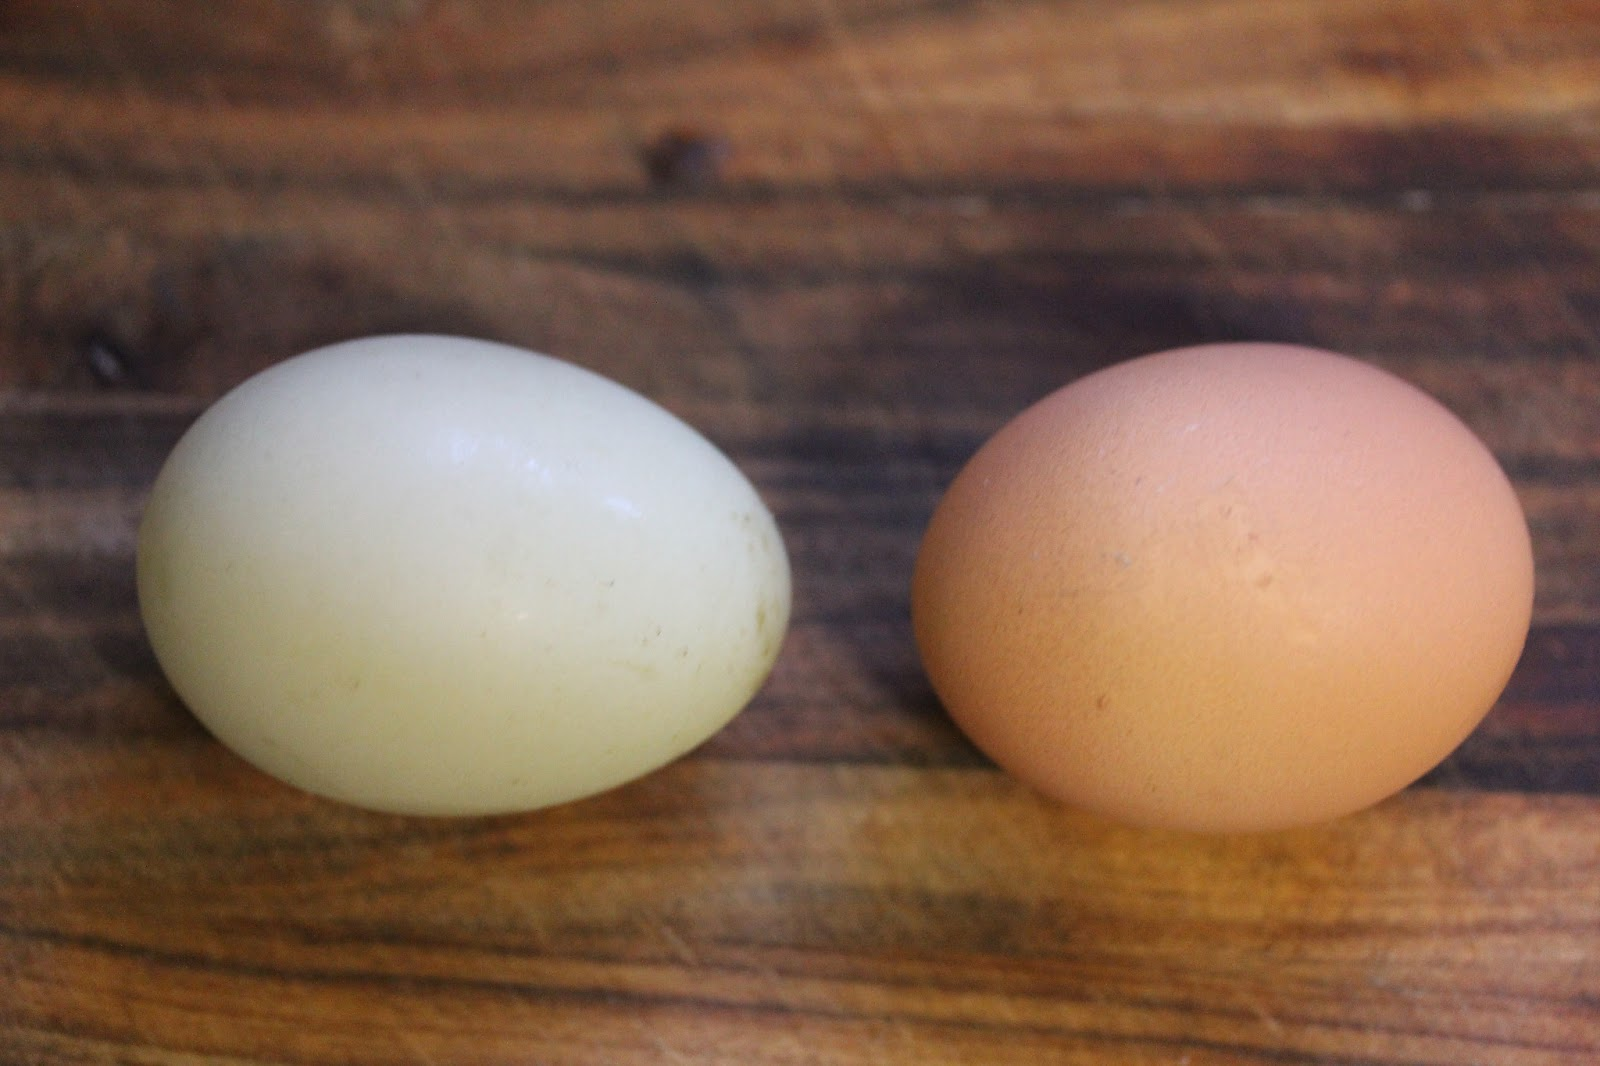 bek u0027s backyard duck egg vs chicken egg the taste off